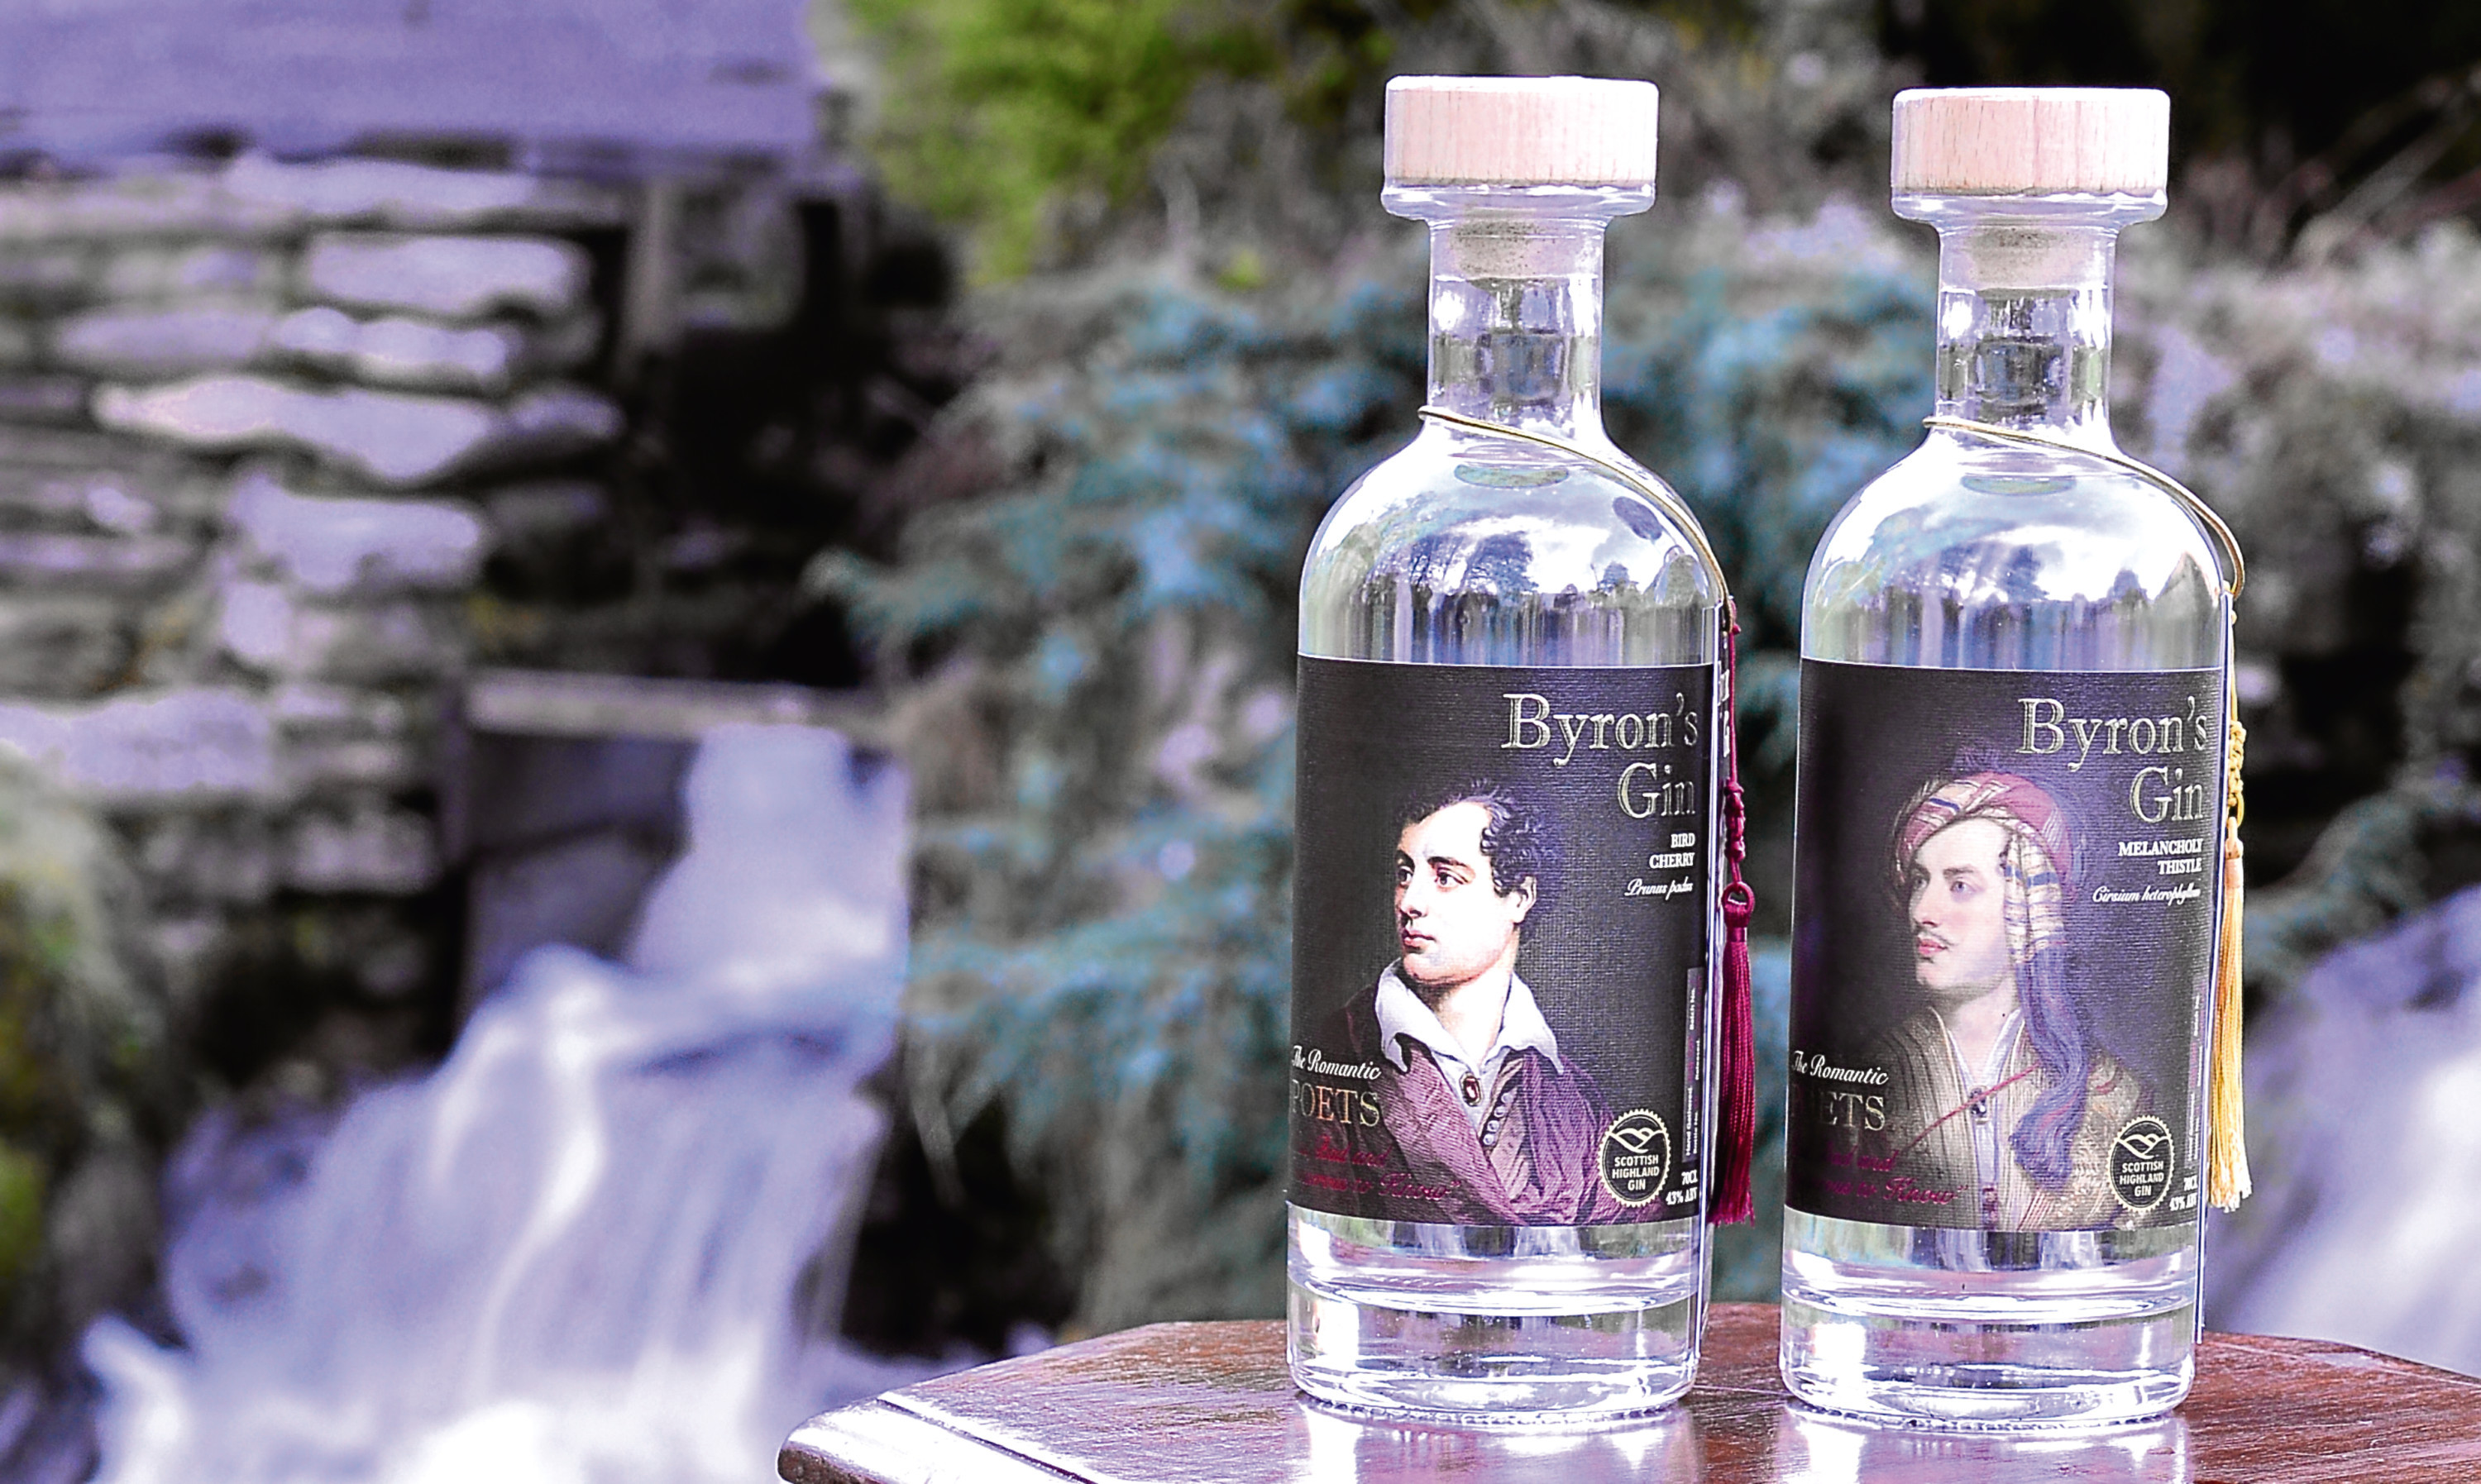 Byrons Gin from Speyside Distillery